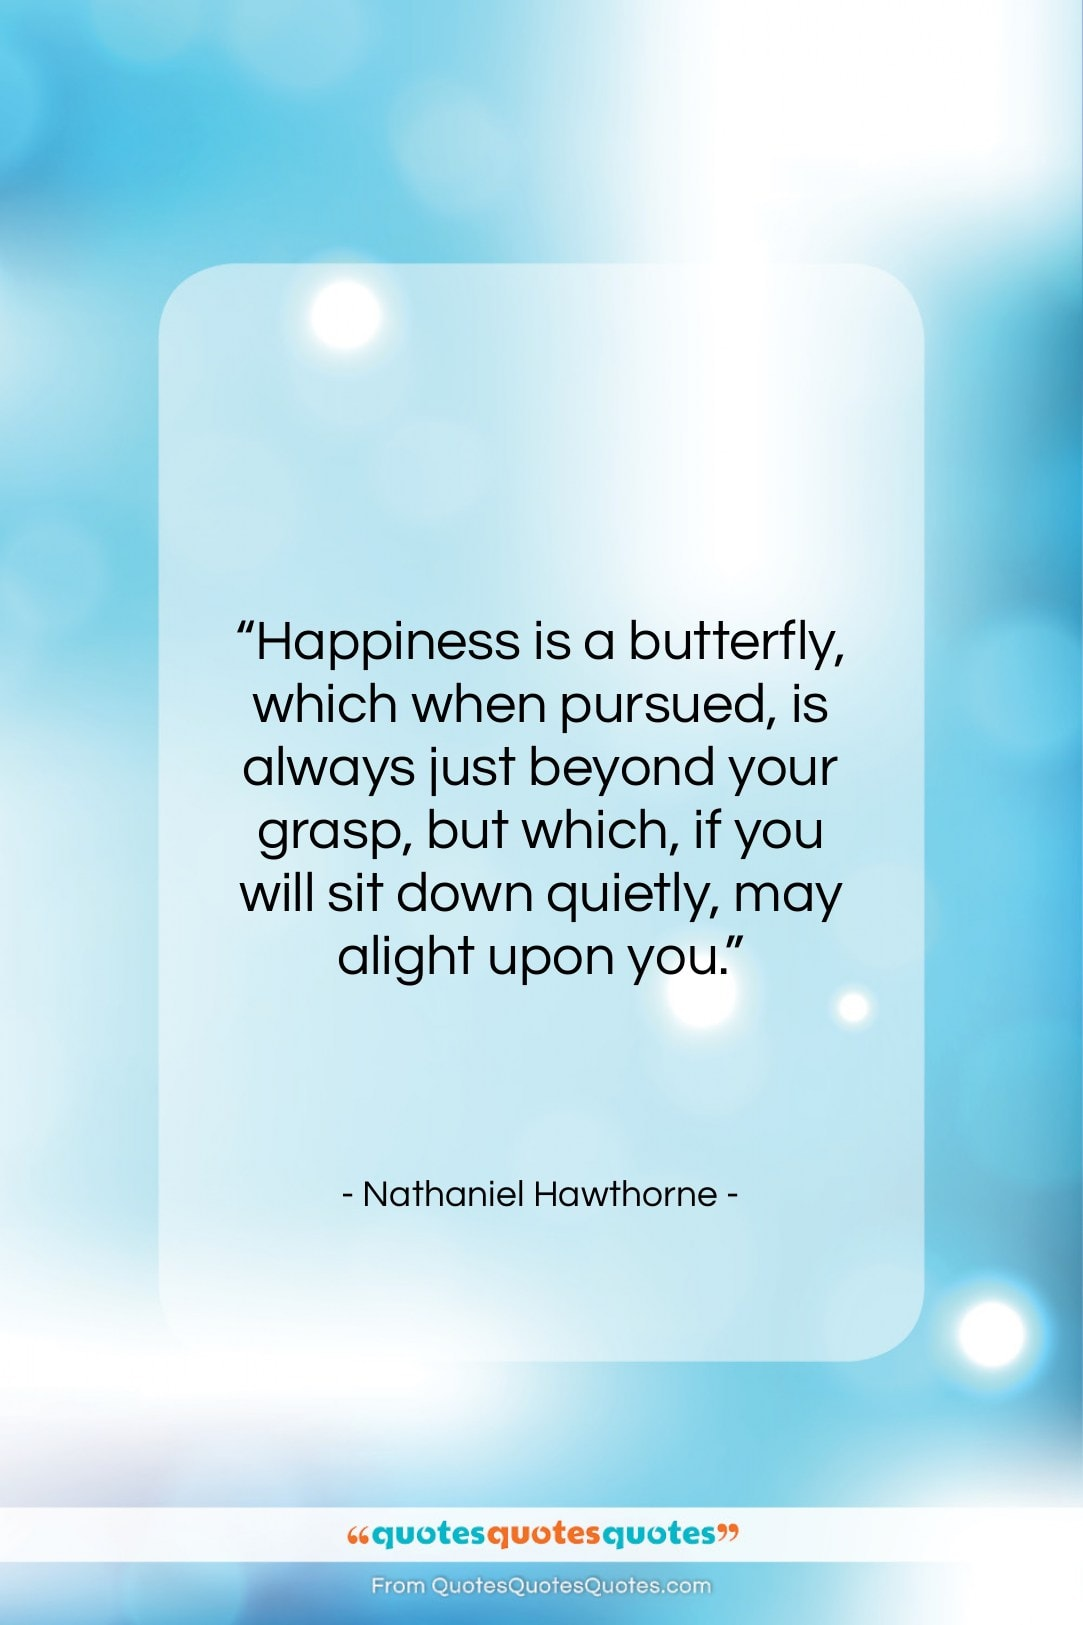 """Nathaniel Hawthorne quote: """"Happiness is a butterfly, which when pursued,…""""- at QuotesQuotesQuotes.com"""